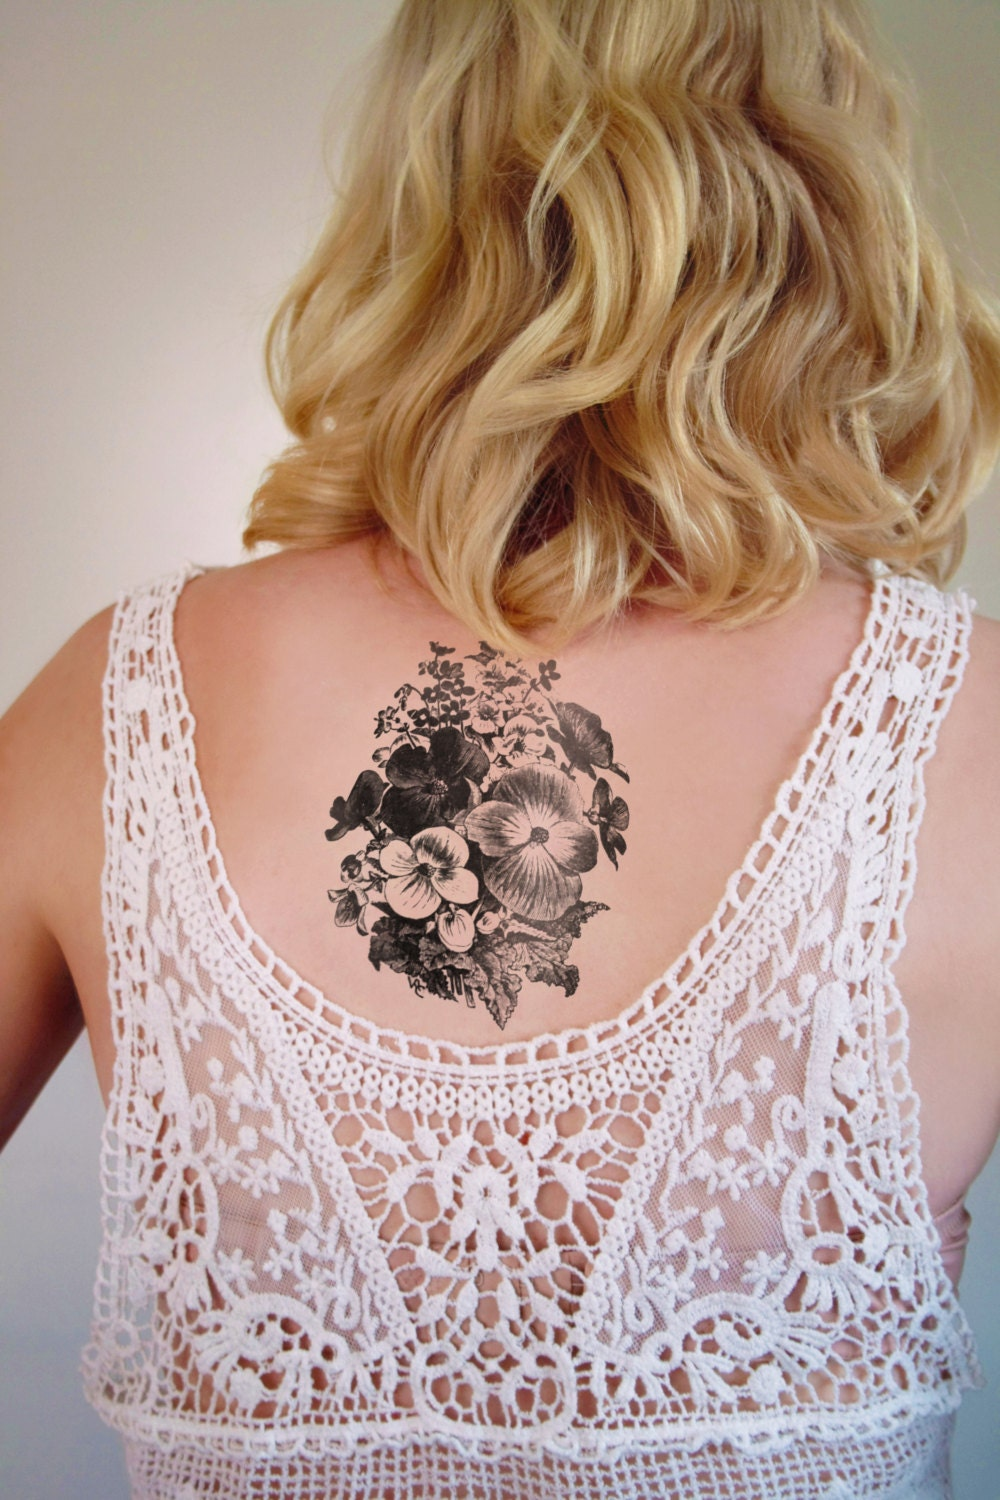 Large floral arrangement temporary tattoo floral by for Floral temporary tattoos